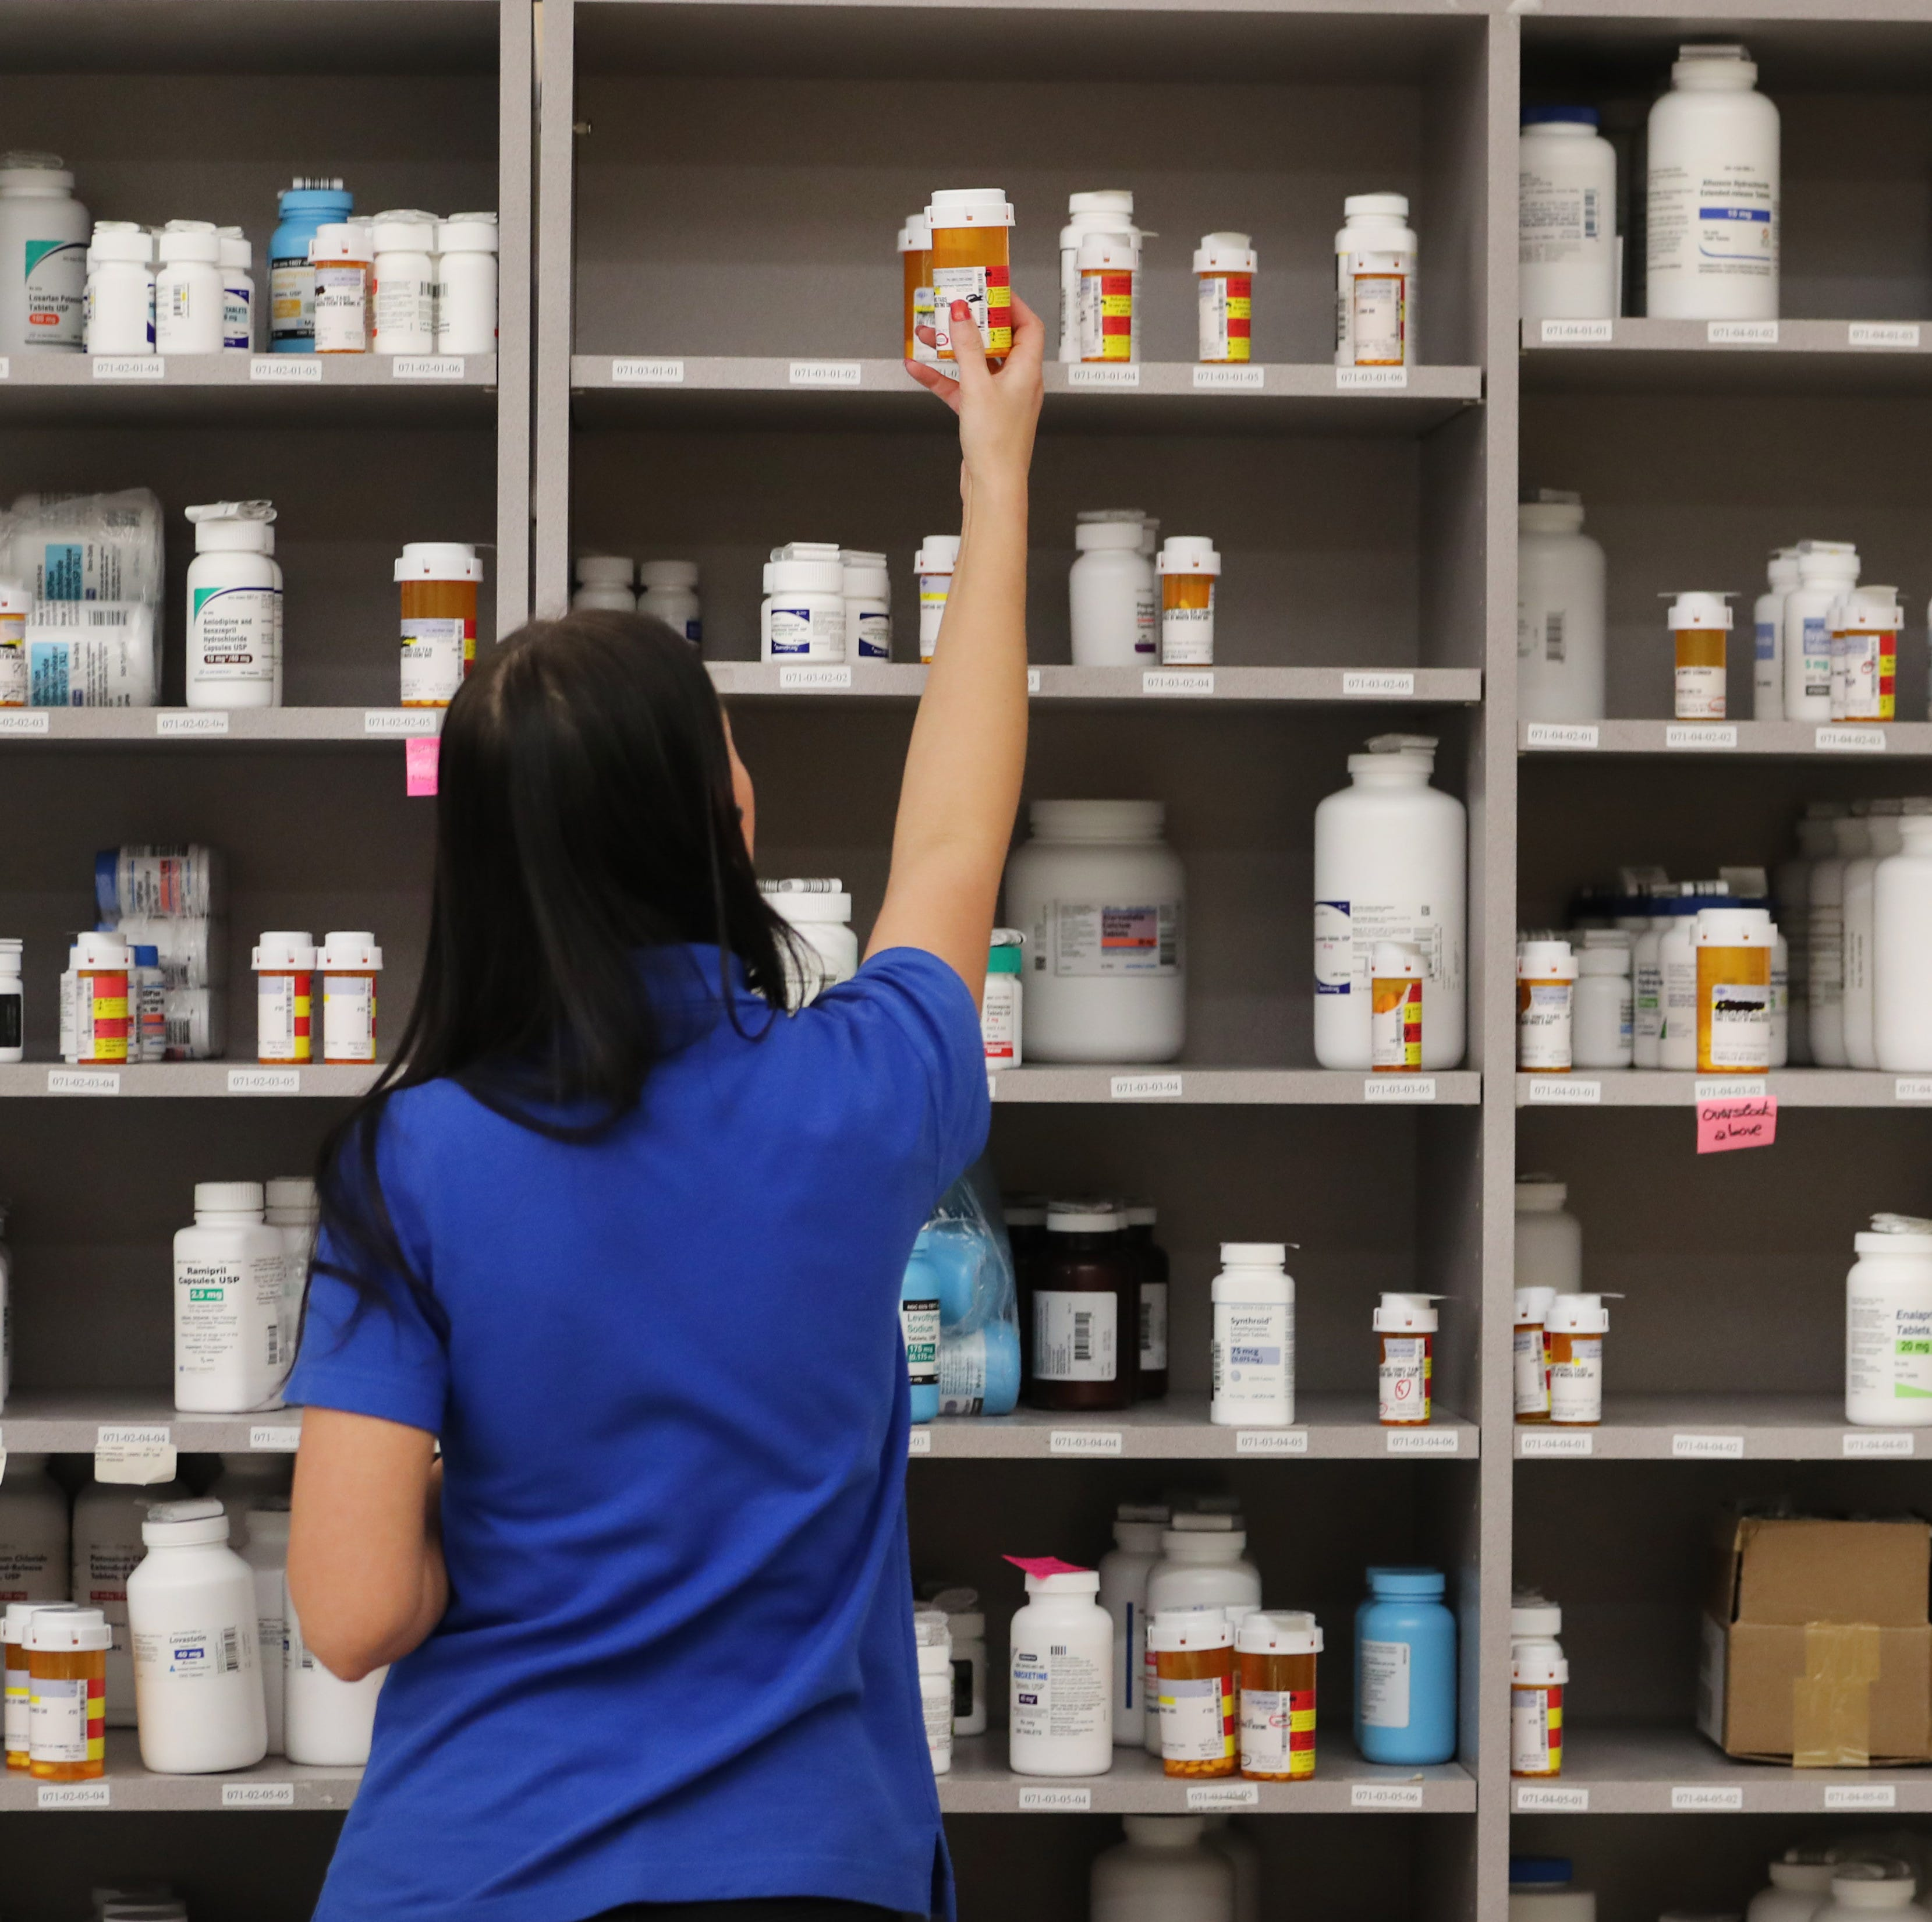 PhRMA: Drug list prices in ads would be confusing